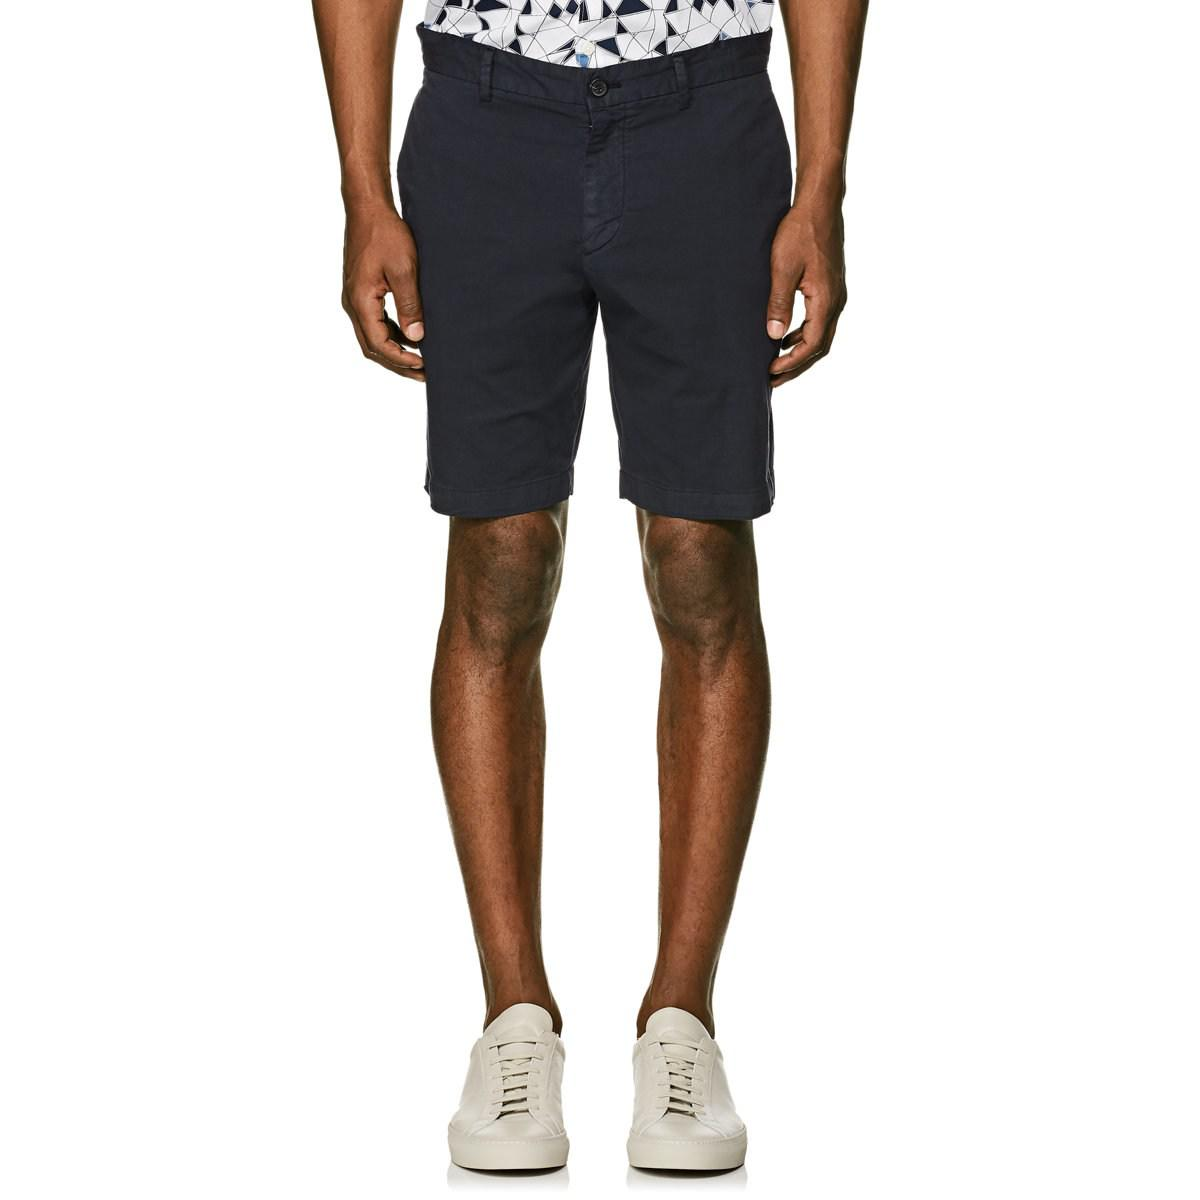 Mens Evan Patton Cotton Chino Shorts Theory Cheapest Shopping With Paypal Online Cheap Sale For Nice EmMarM